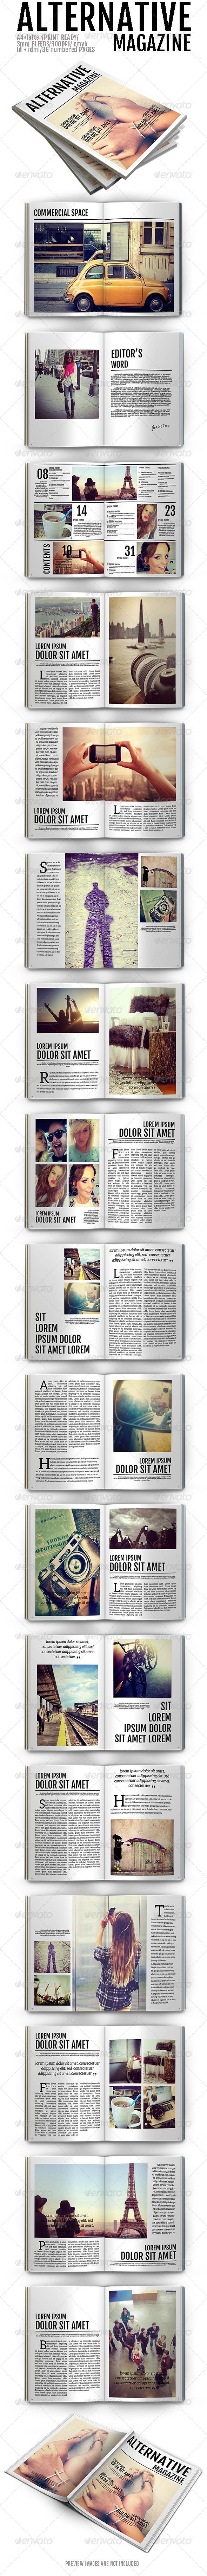 Alternative Magazine | Magazines, Layouts and Magazine layouts